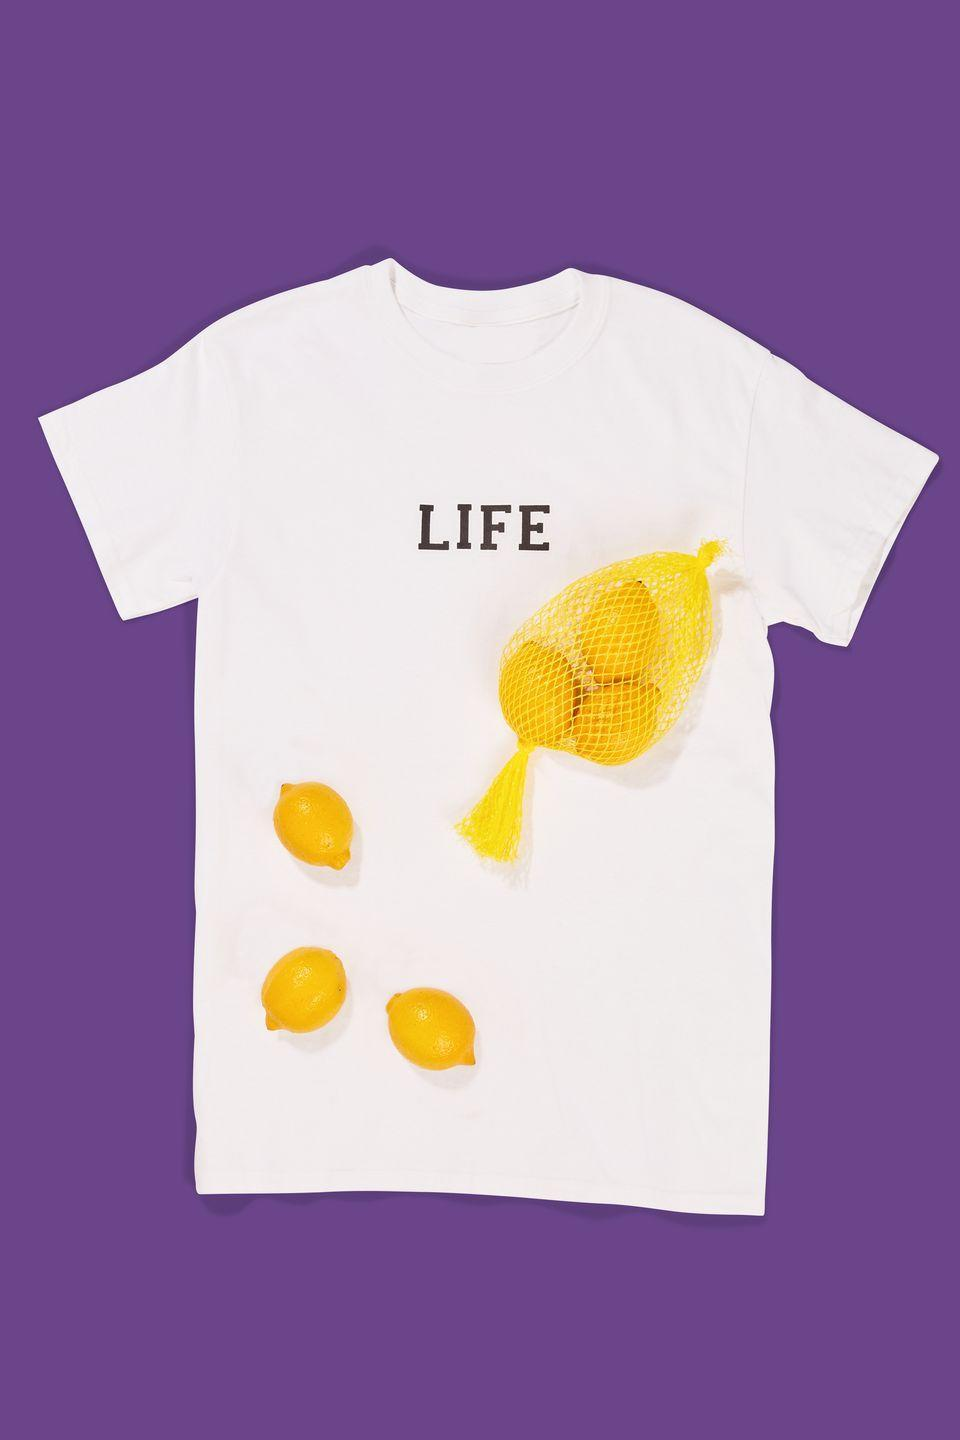 """<p> Use adhesive letters or a black Sharpie to write """"LIFE"""" on a white T-shirt, then carry around a bag of lemons to hand out. Done and done. </p><p><a class=""""link rapid-noclick-resp"""" href=""""https://www.amazon.com/SEI-3-4-Inch-Chunky-Letter-Transfer/dp/B0019D7PUA/?tag=syn-yahoo-20&ascsubtag=%5Bartid%7C10070.g.490%5Bsrc%7Cyahoo-us"""" rel=""""nofollow noopener"""" target=""""_blank"""" data-ylk=""""slk:SHOP IRON-ON LETTERS"""">SHOP IRON-ON LETTERS</a> </p>"""